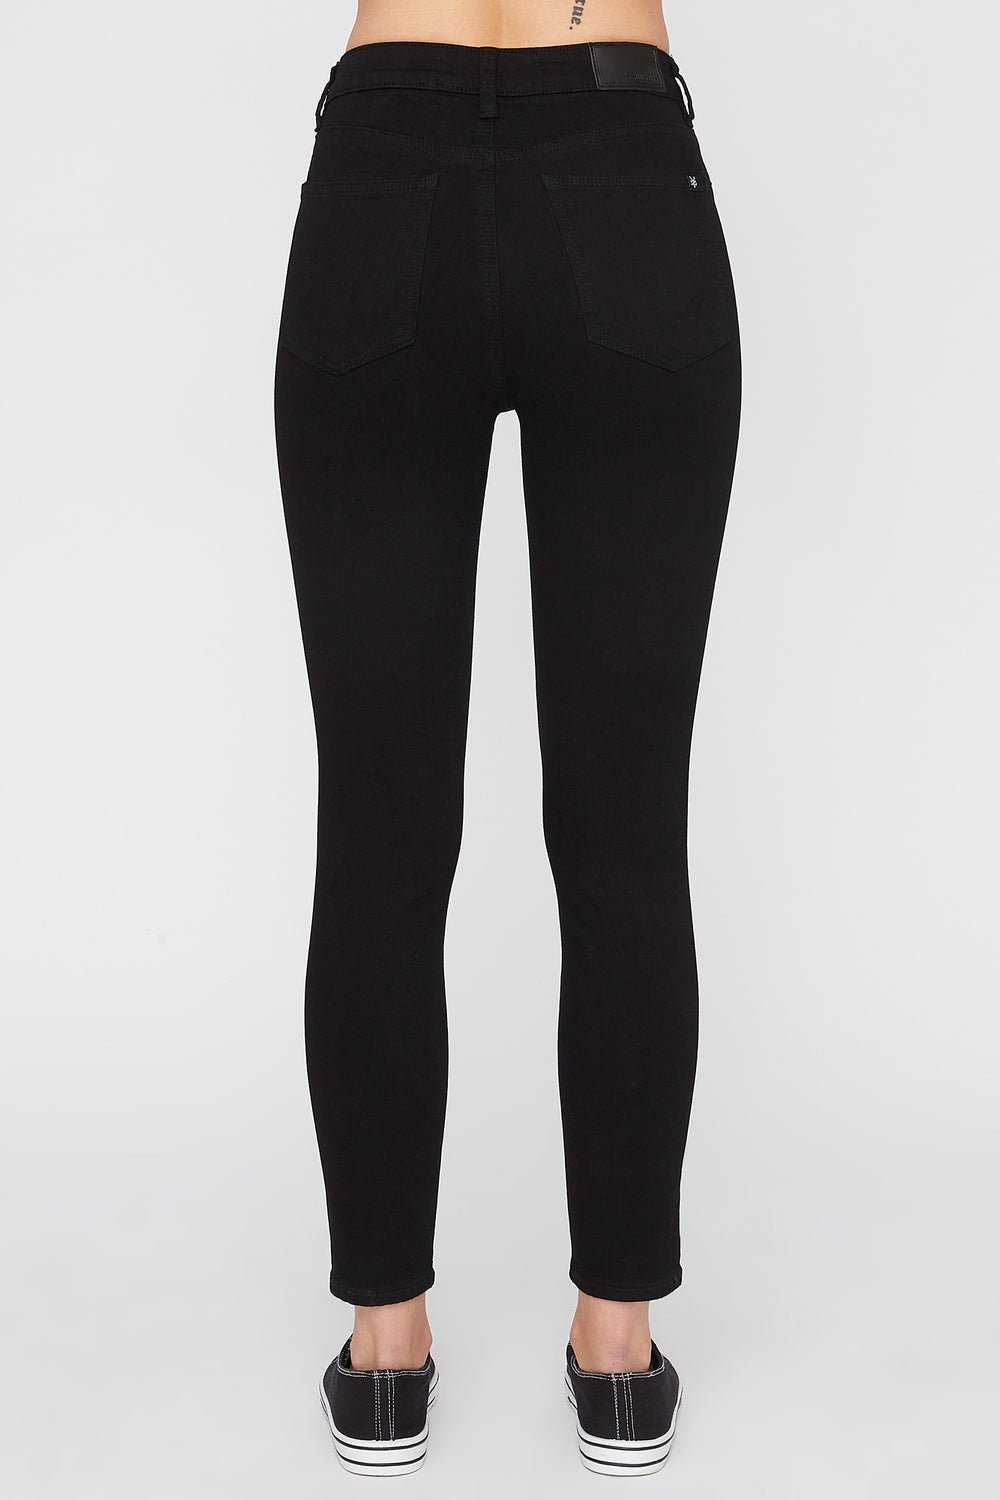 Zoo York Womens Black Skinny Jeans Black